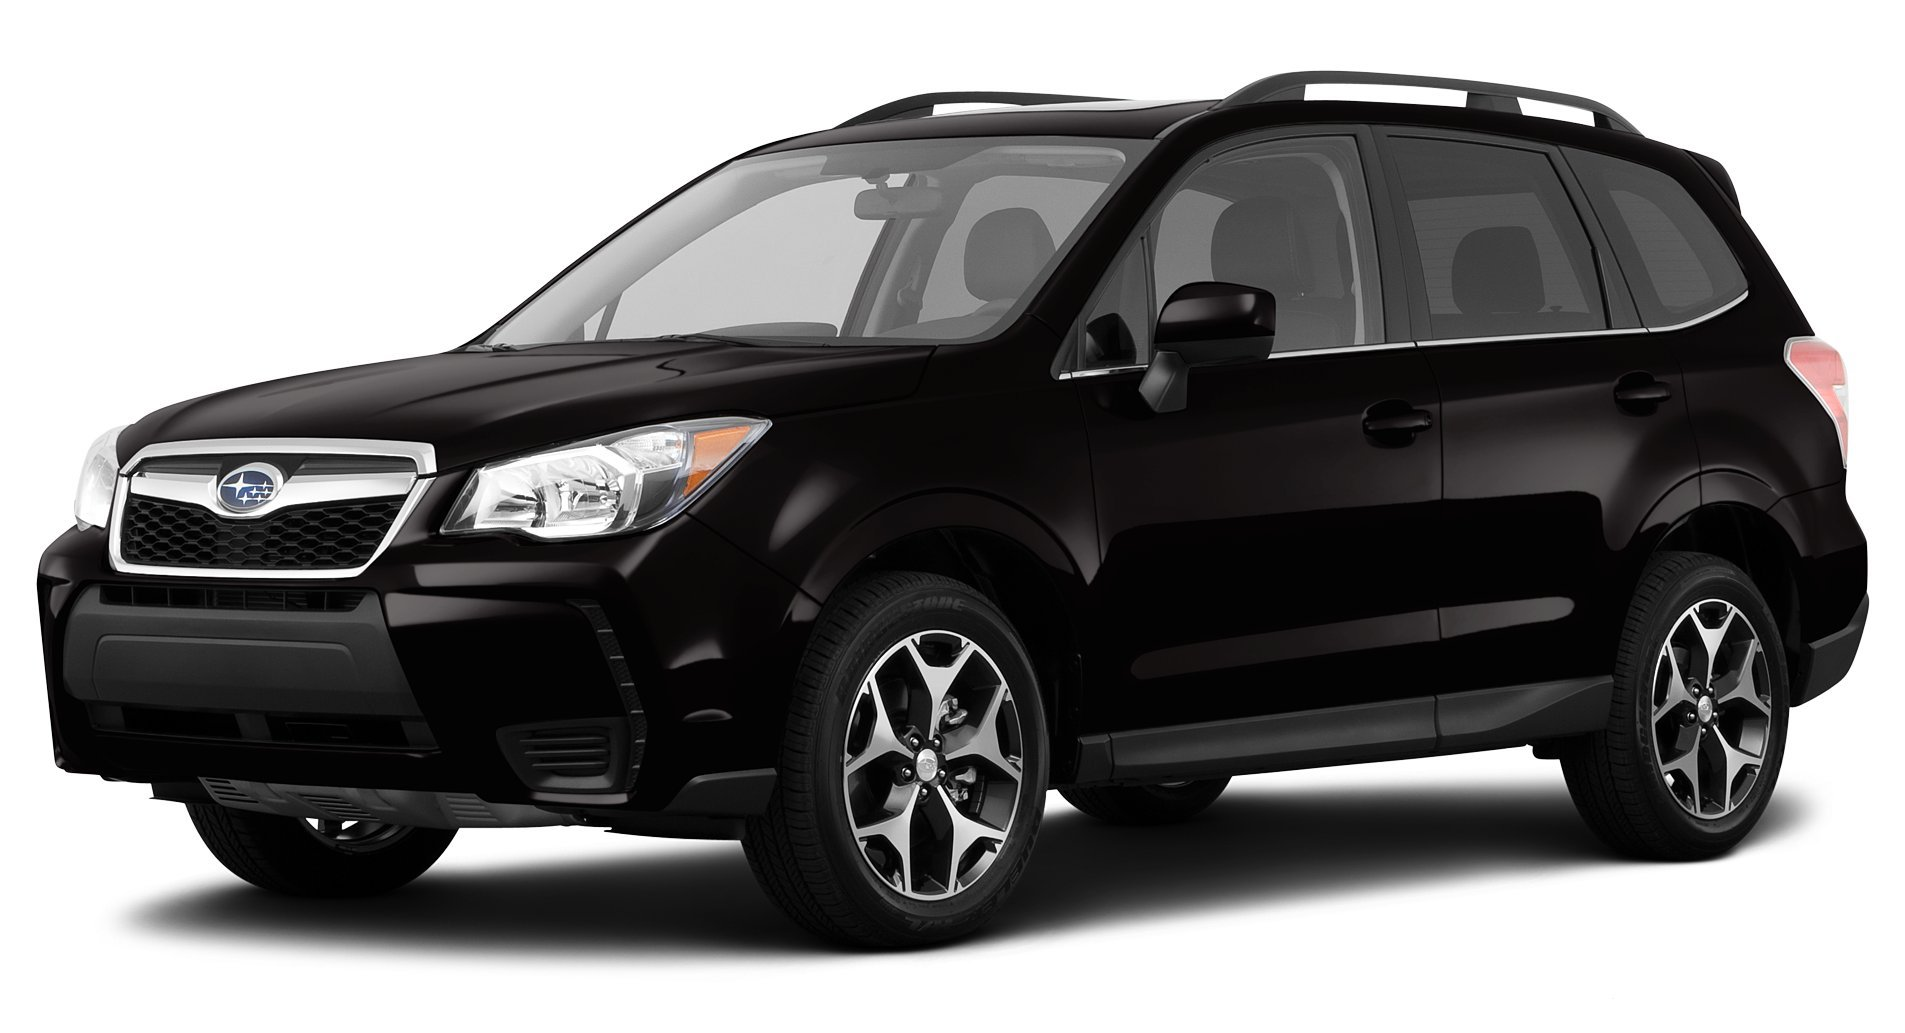 2014 subaru forester reviews images and. Black Bedroom Furniture Sets. Home Design Ideas